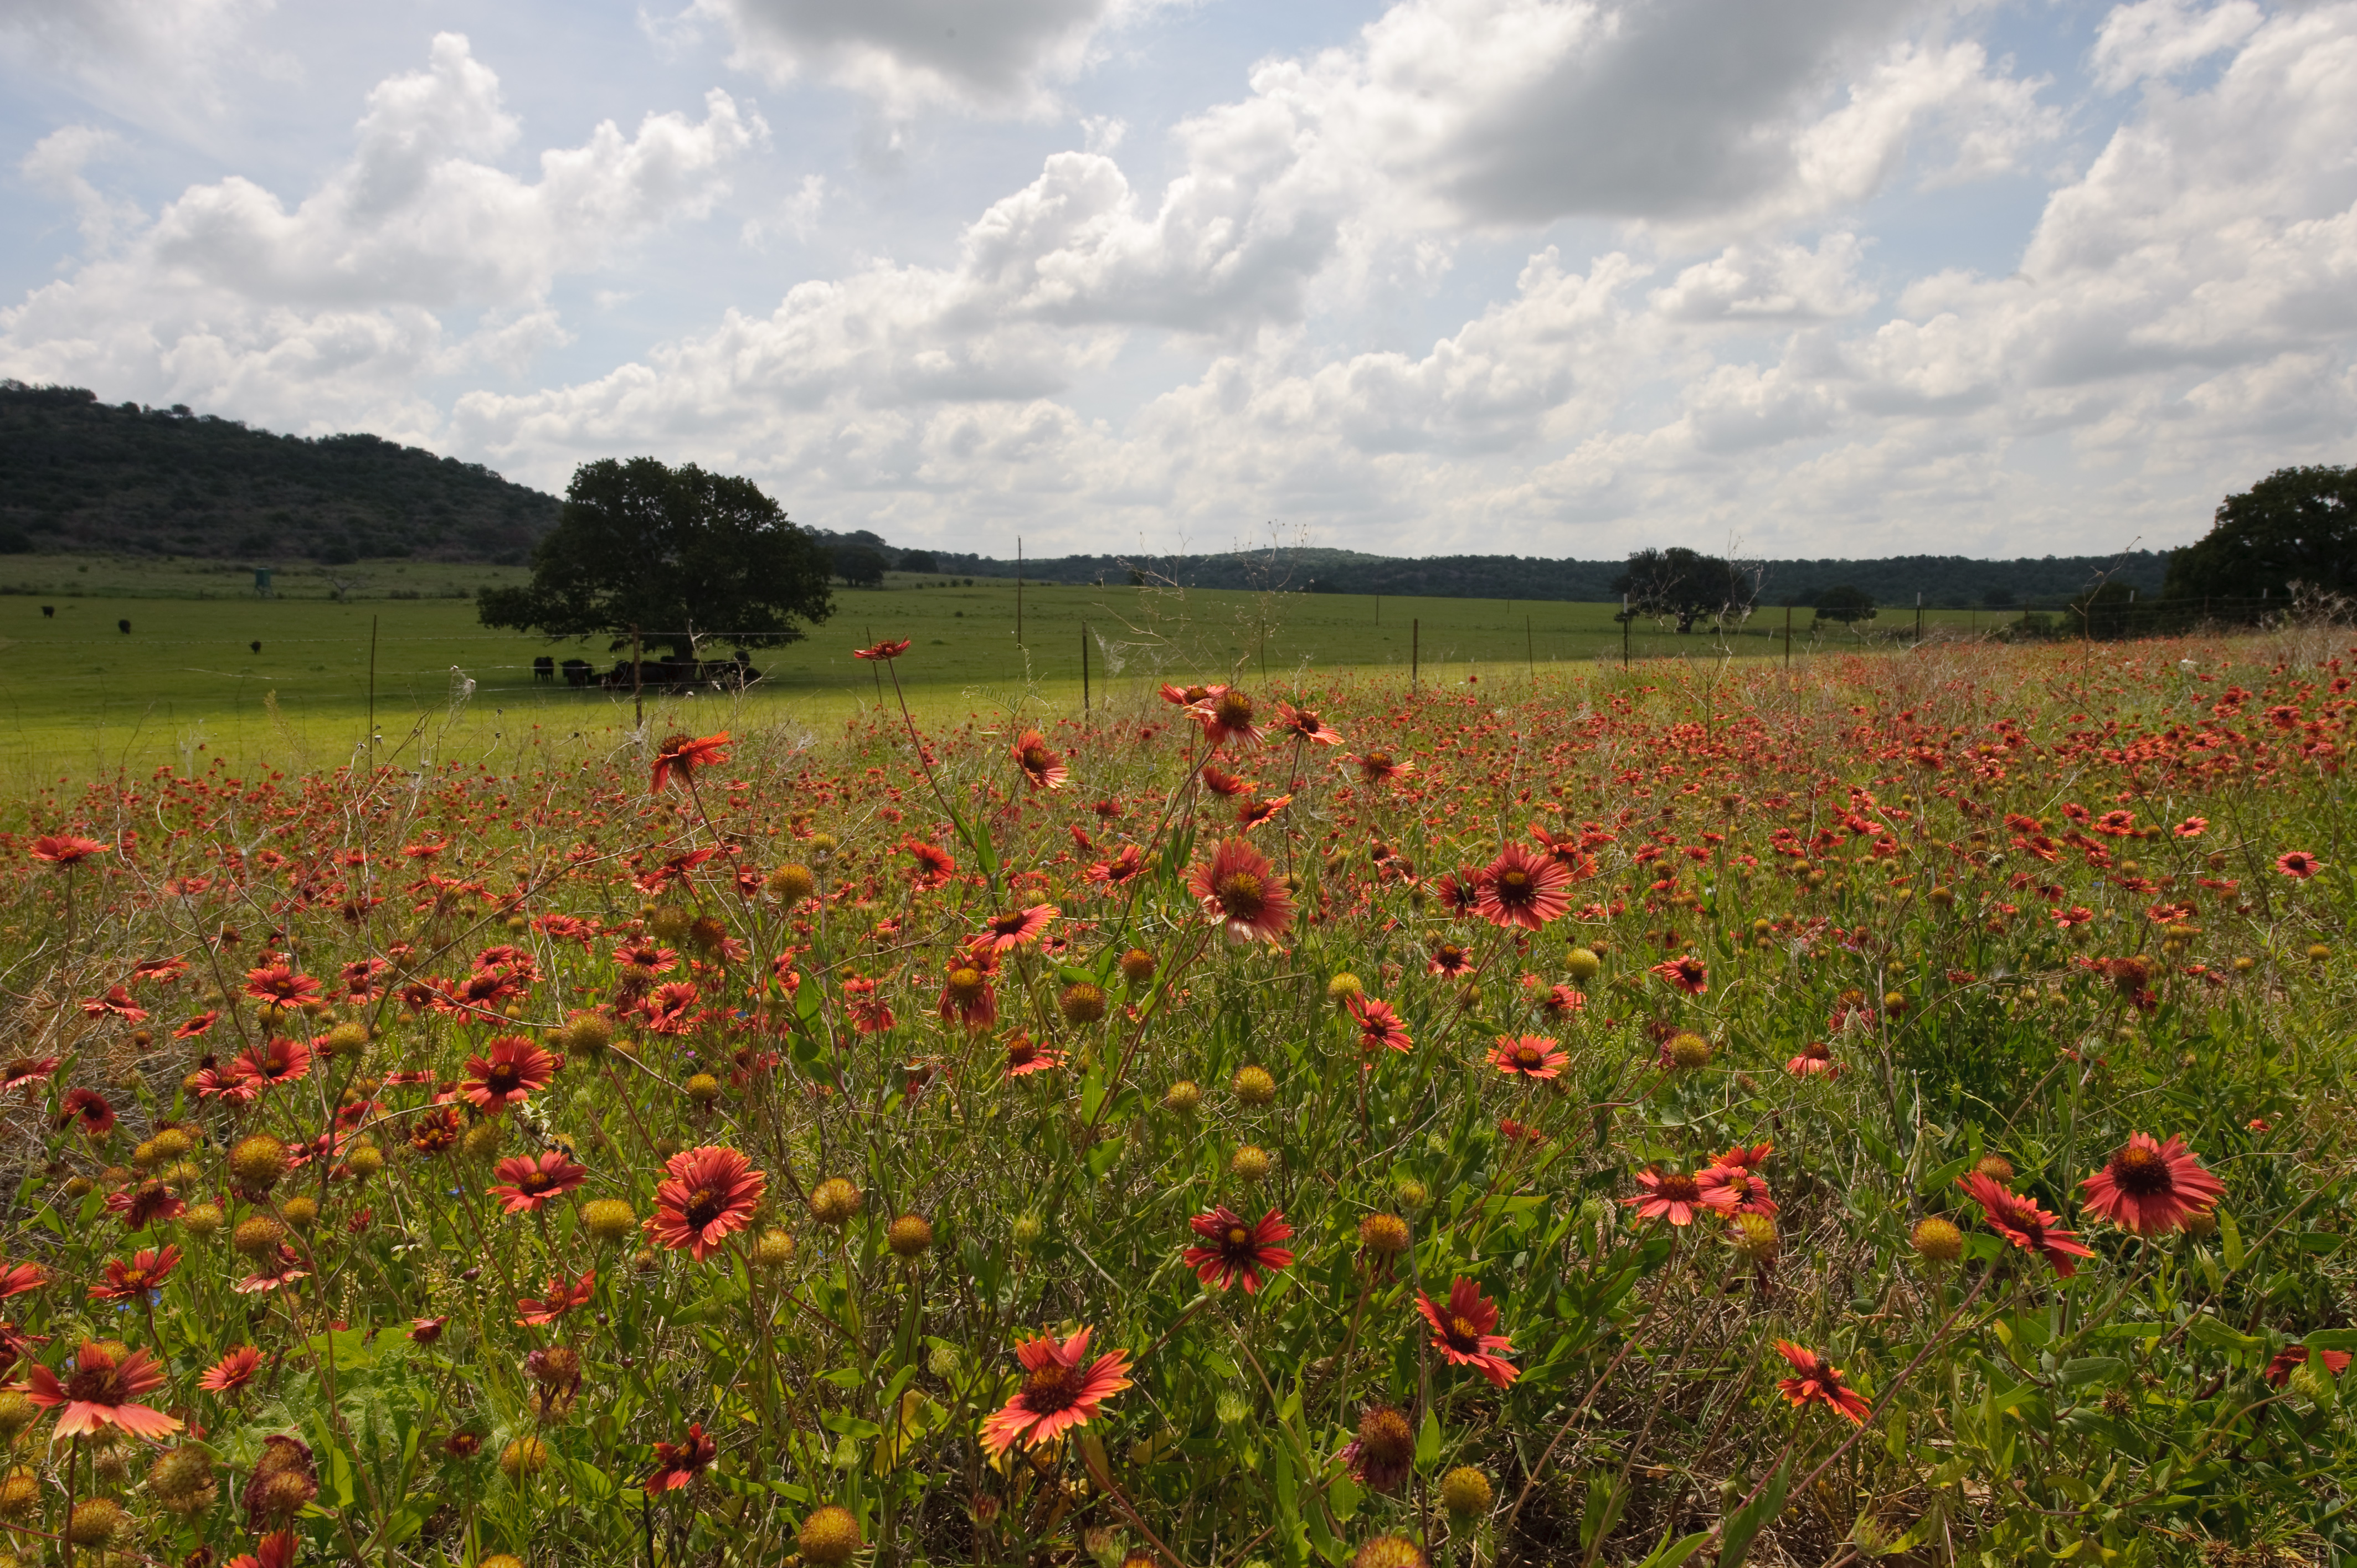 Filespring Time In The Hill Country Brings On Wild Flowers And